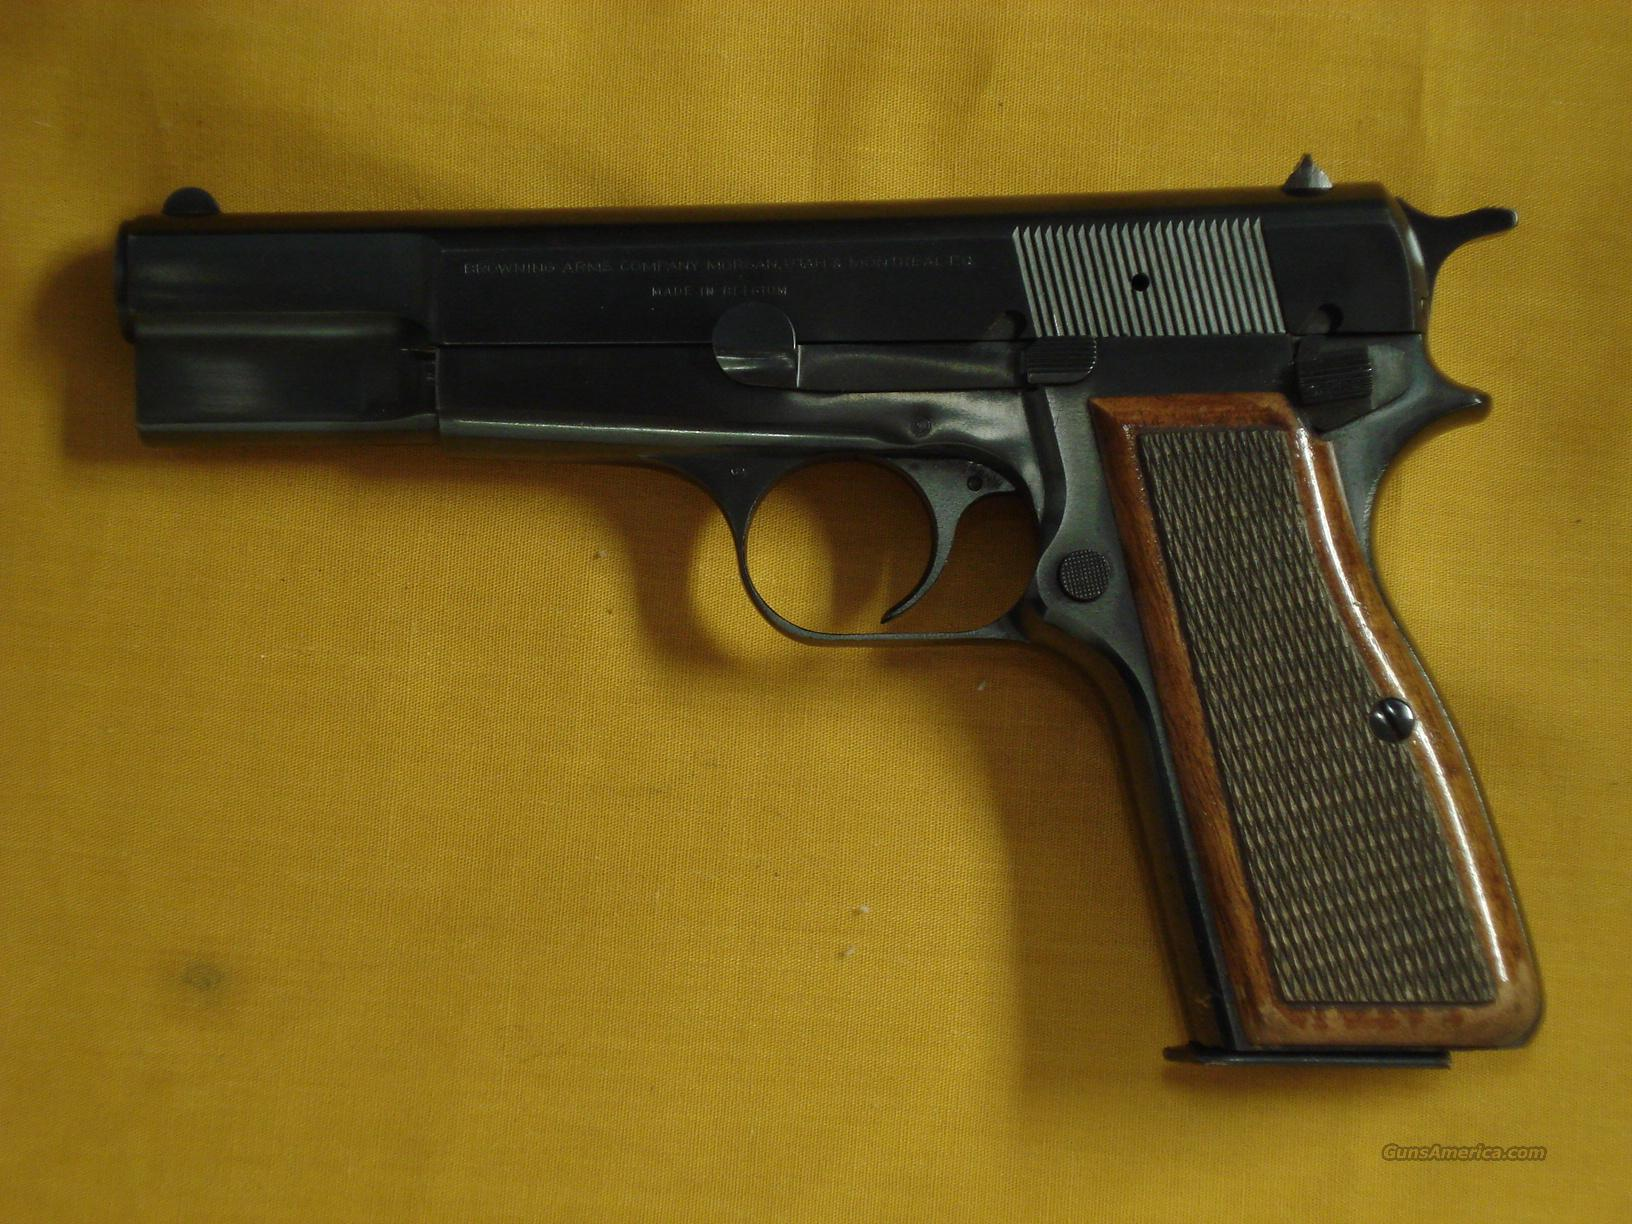 "BROWNING HI POWER 9MM 4 1/2""BBL  Guns > Pistols > Browning Pistols > Hi Power"